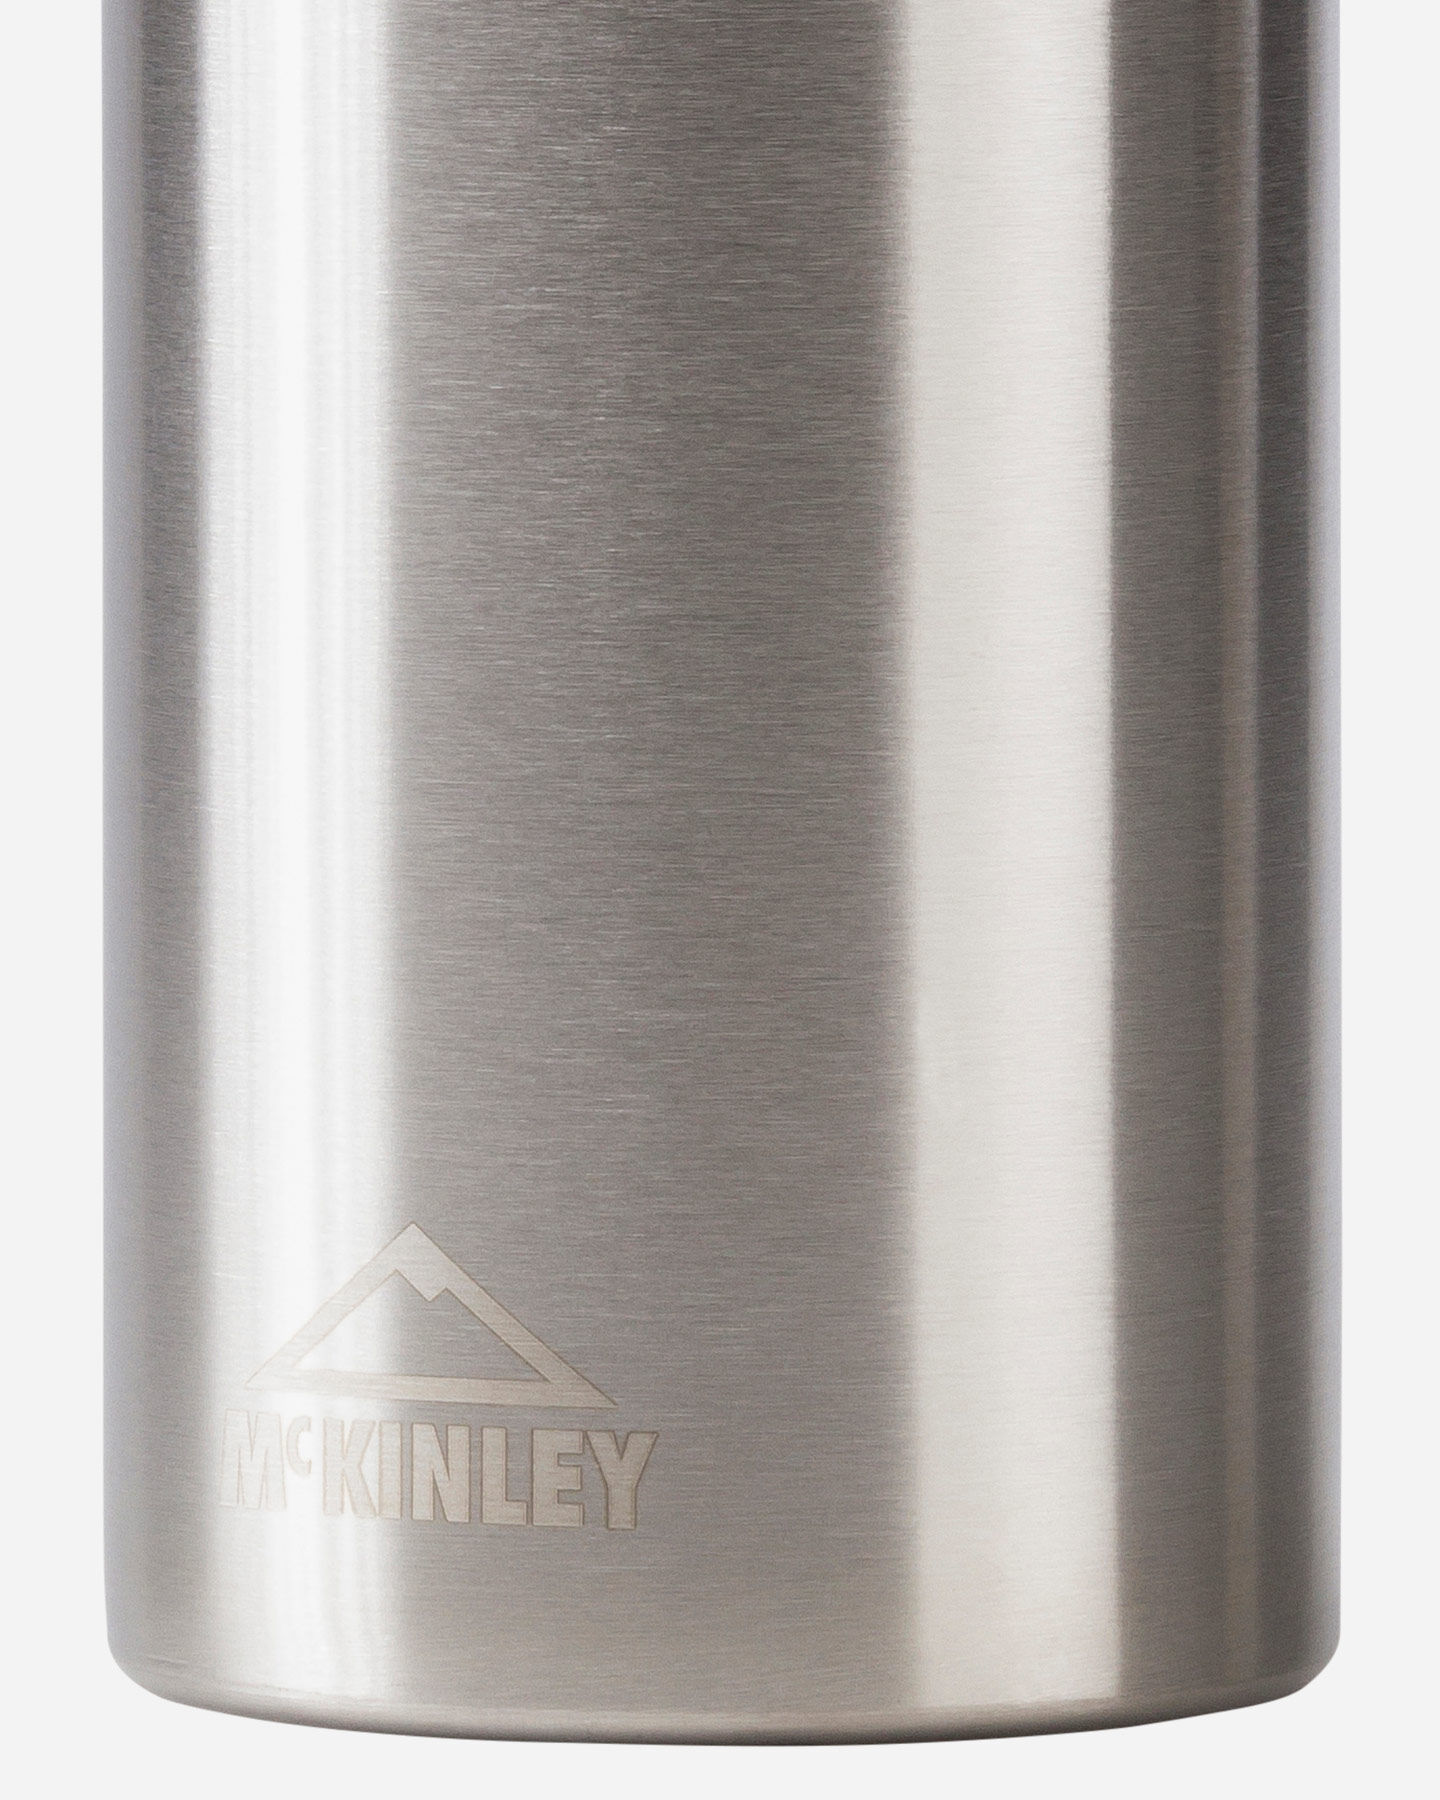 Accessorio camping MCKINLEY STAINLESS STEEL 1,50 S2002773|869|1,50 scatto 1